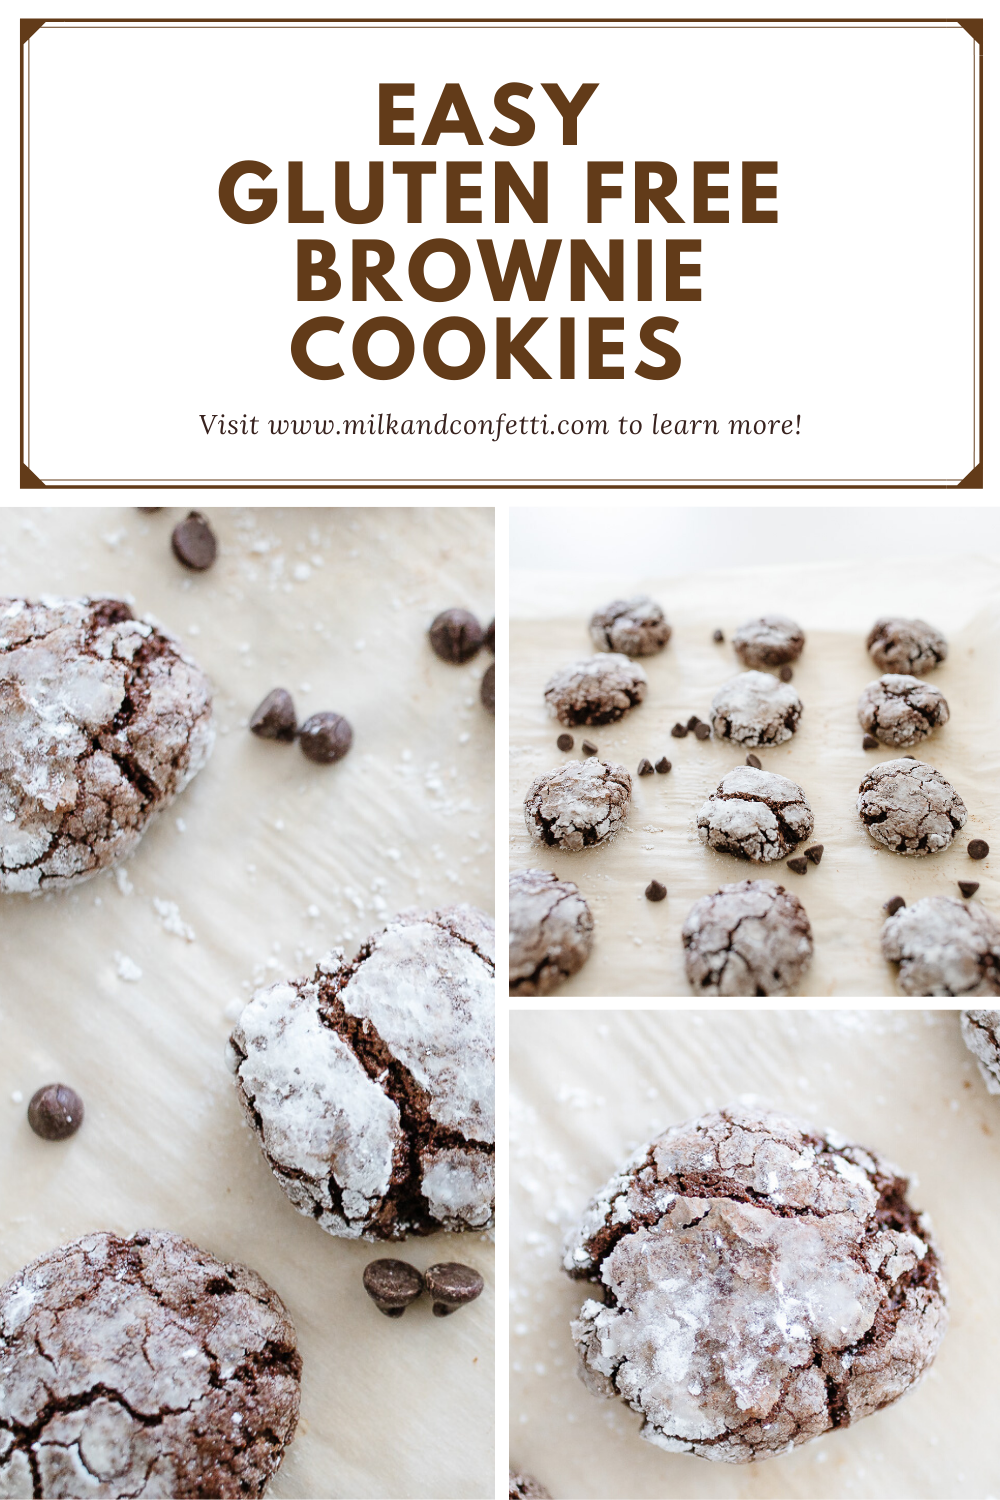 An easy gluten free brownie cookie recipe that won't disappoint!